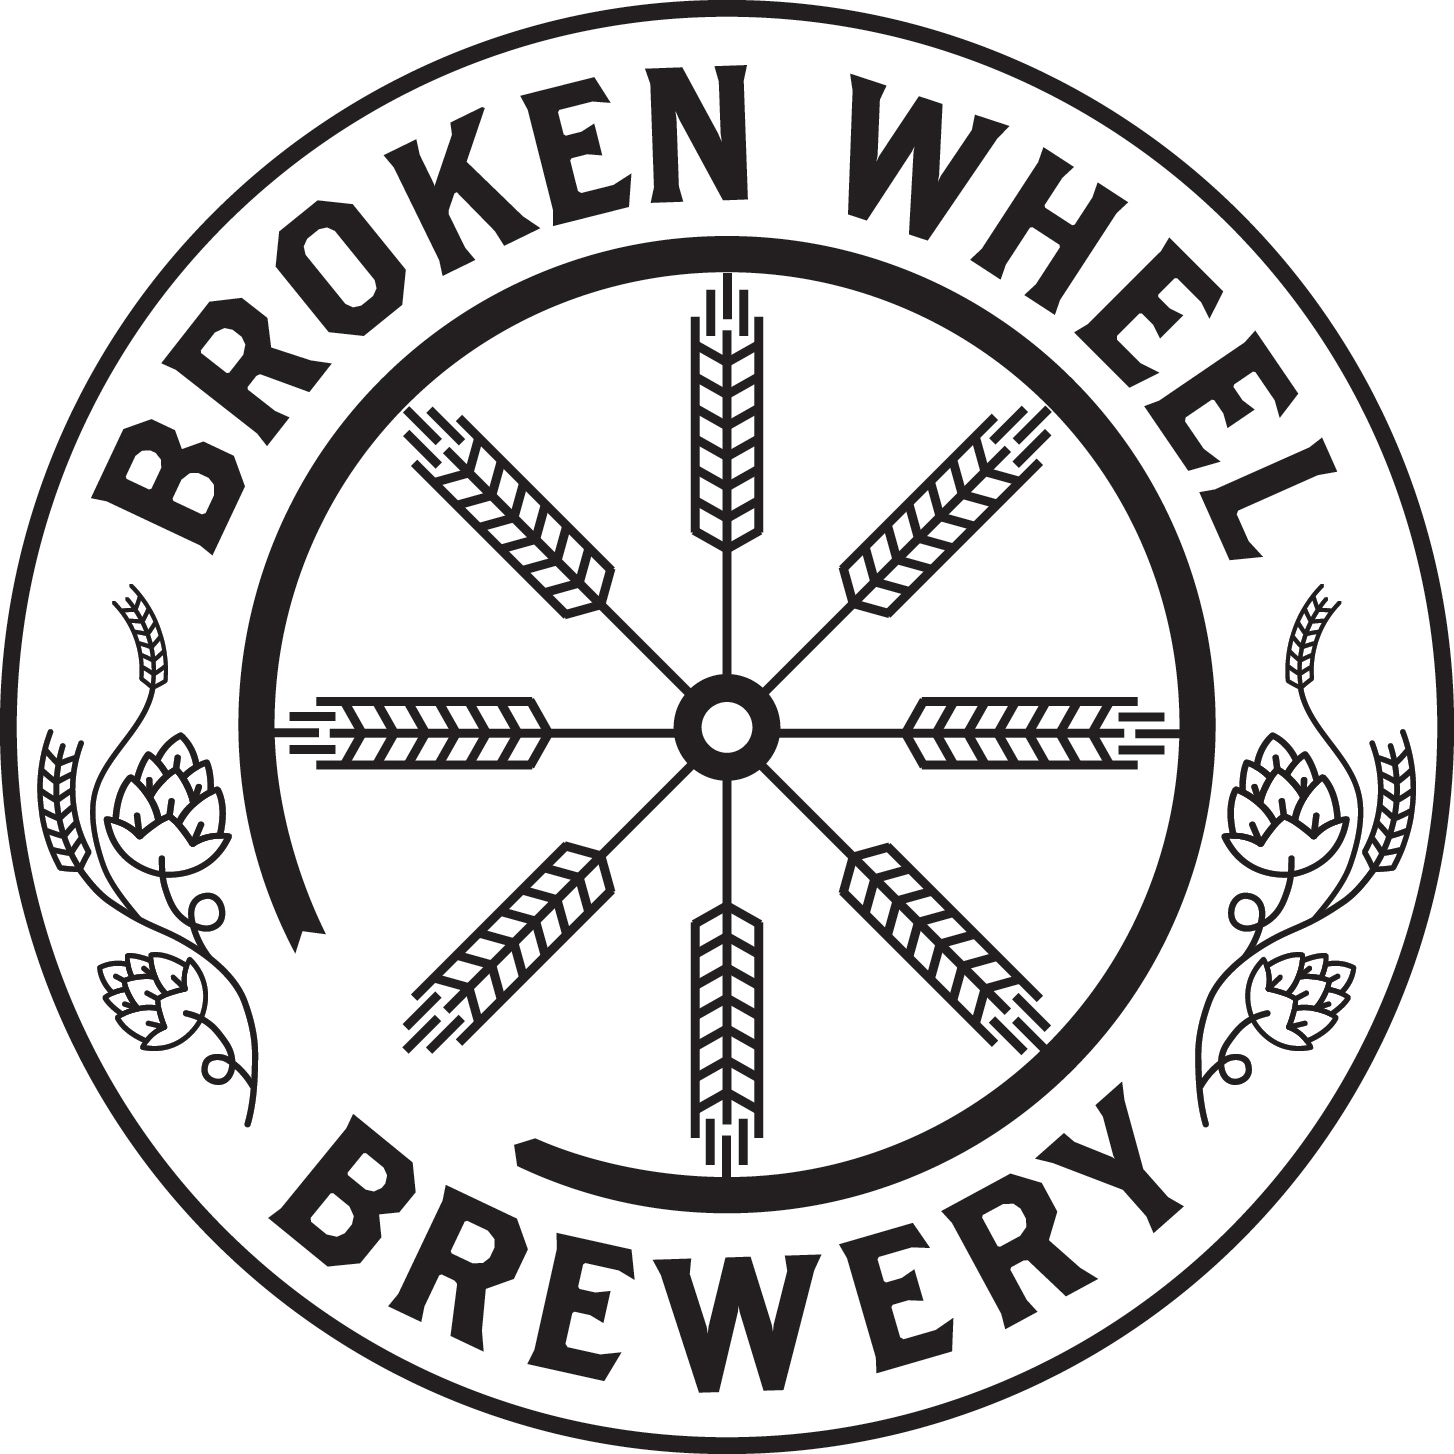 Broken Wheel Brewery